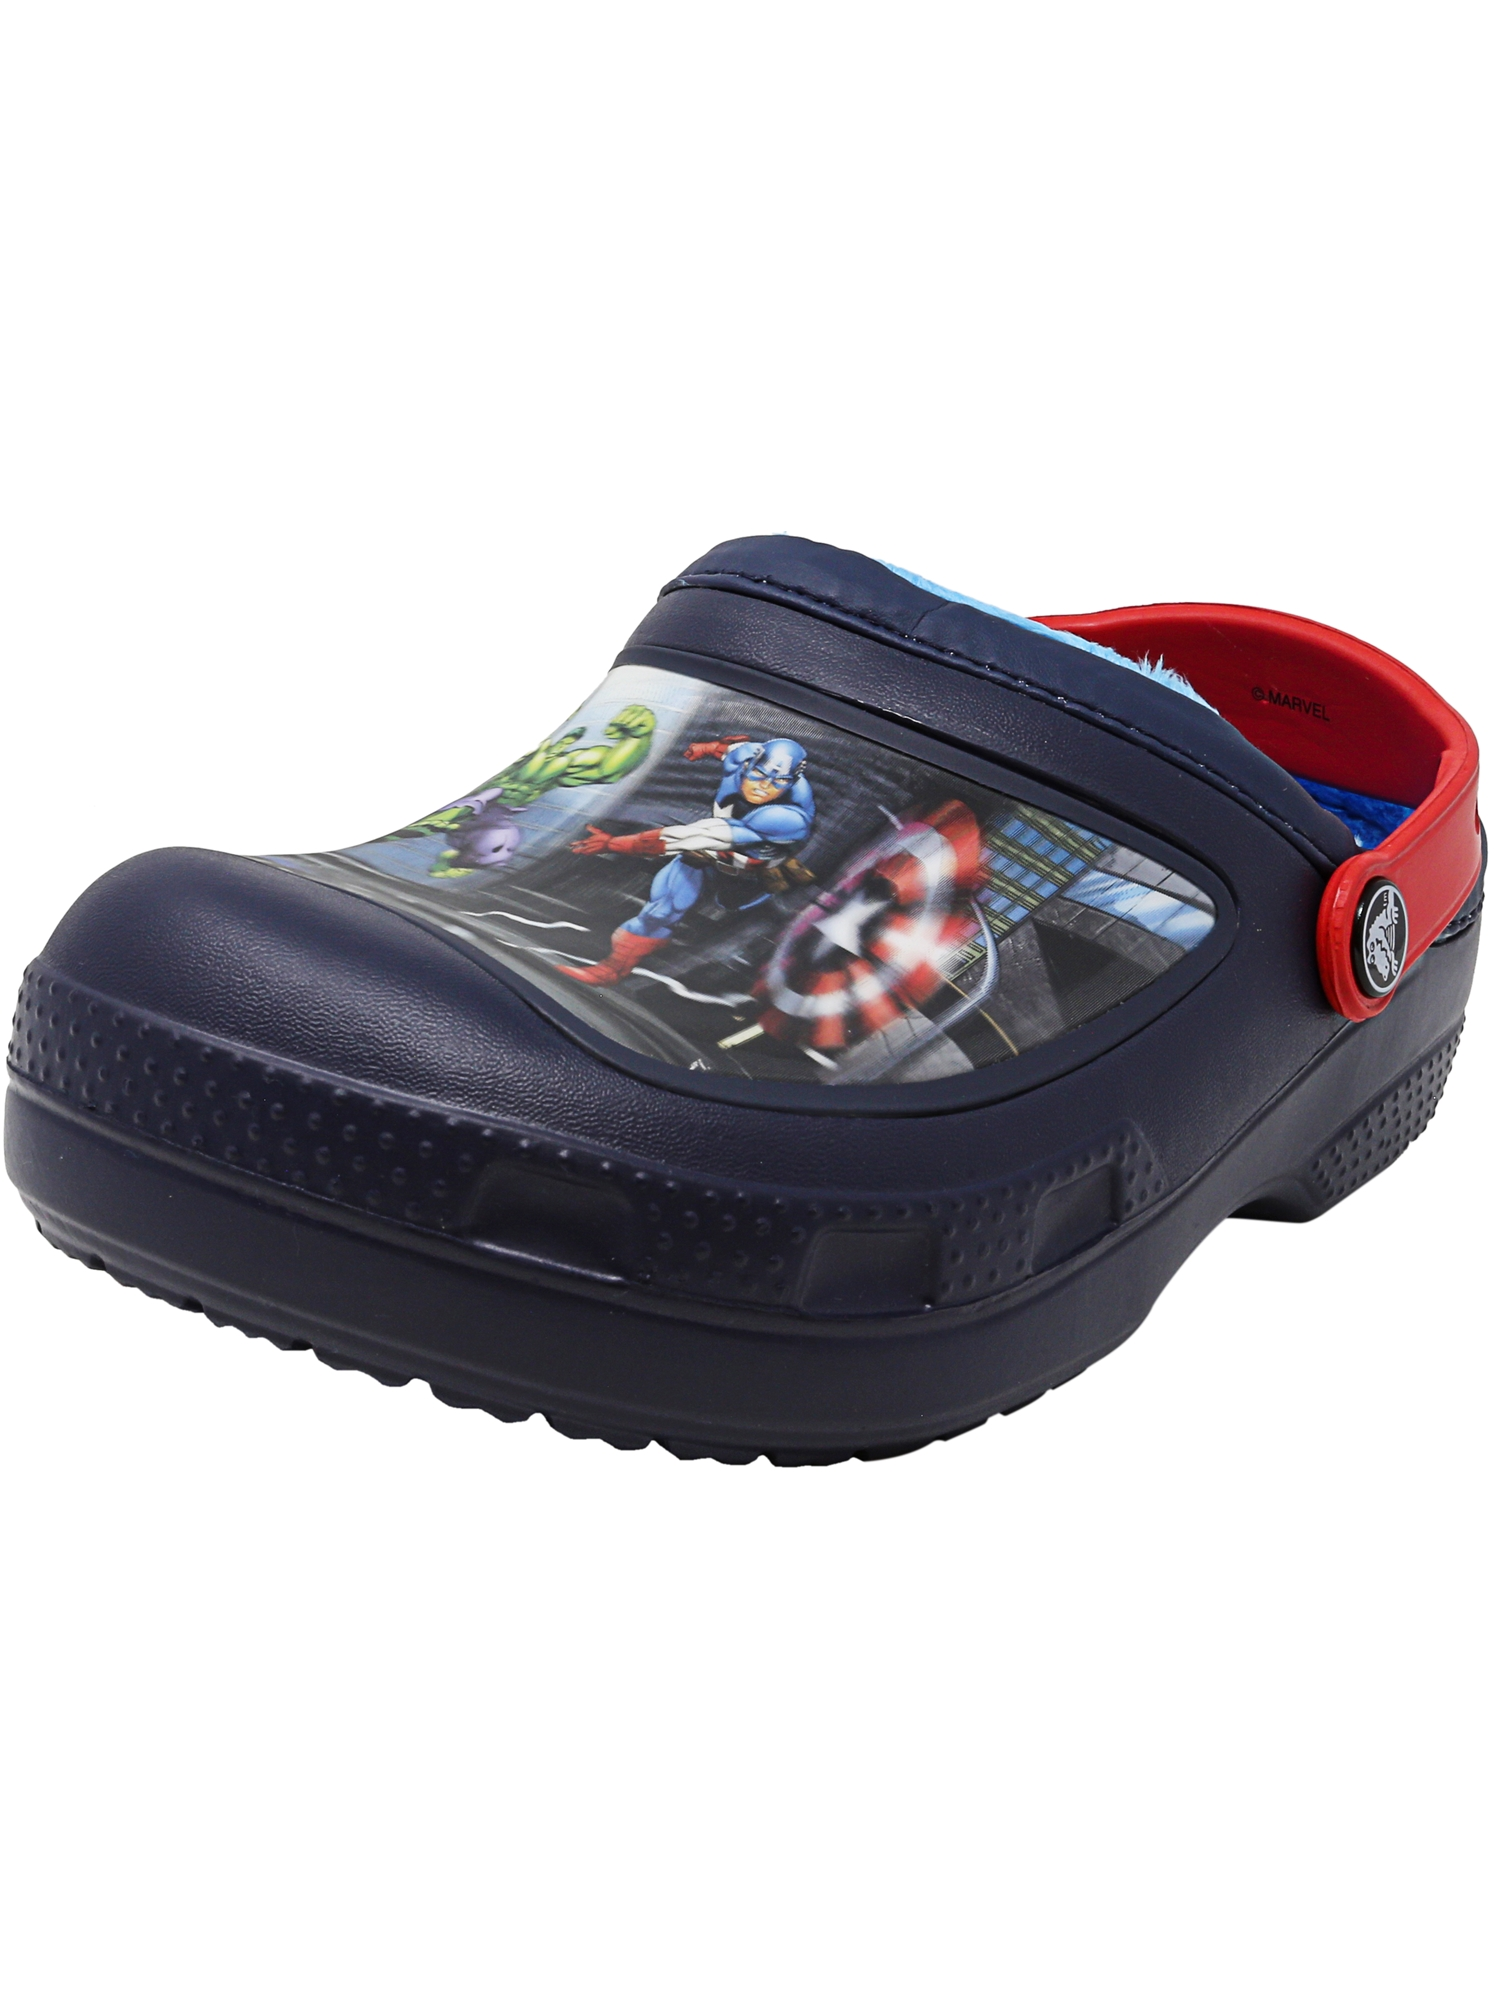 Crocs Cc Marvel Avengers Lined Clog Multi Ankle-High Clogs 2M by Crocs